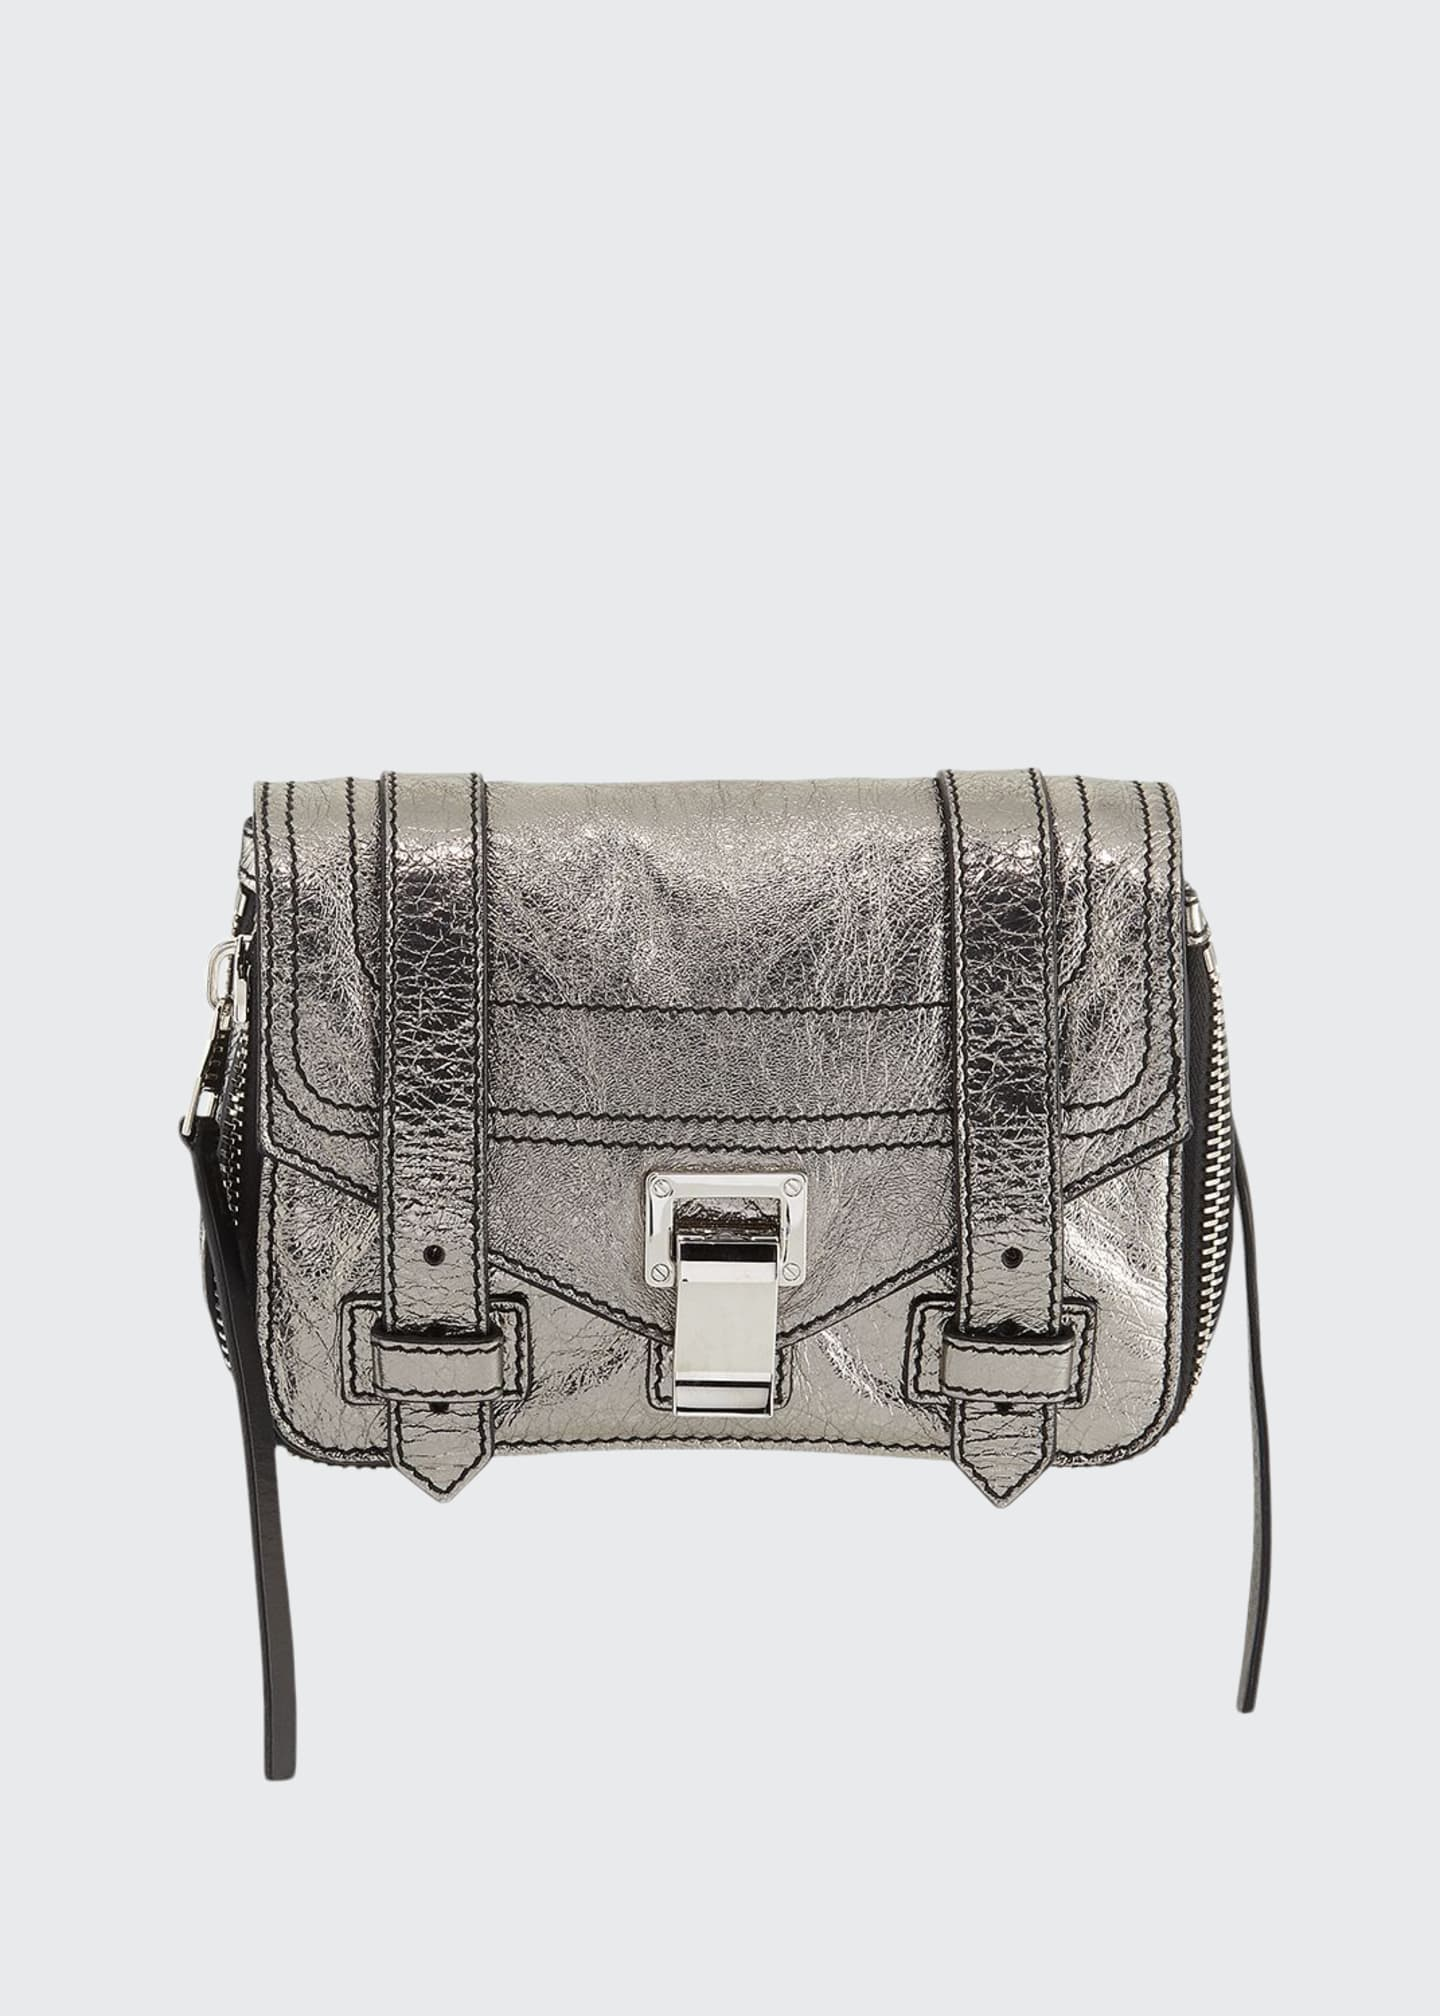 Proenza Schouler PS1+ Mini Metallic Crossbody Bag